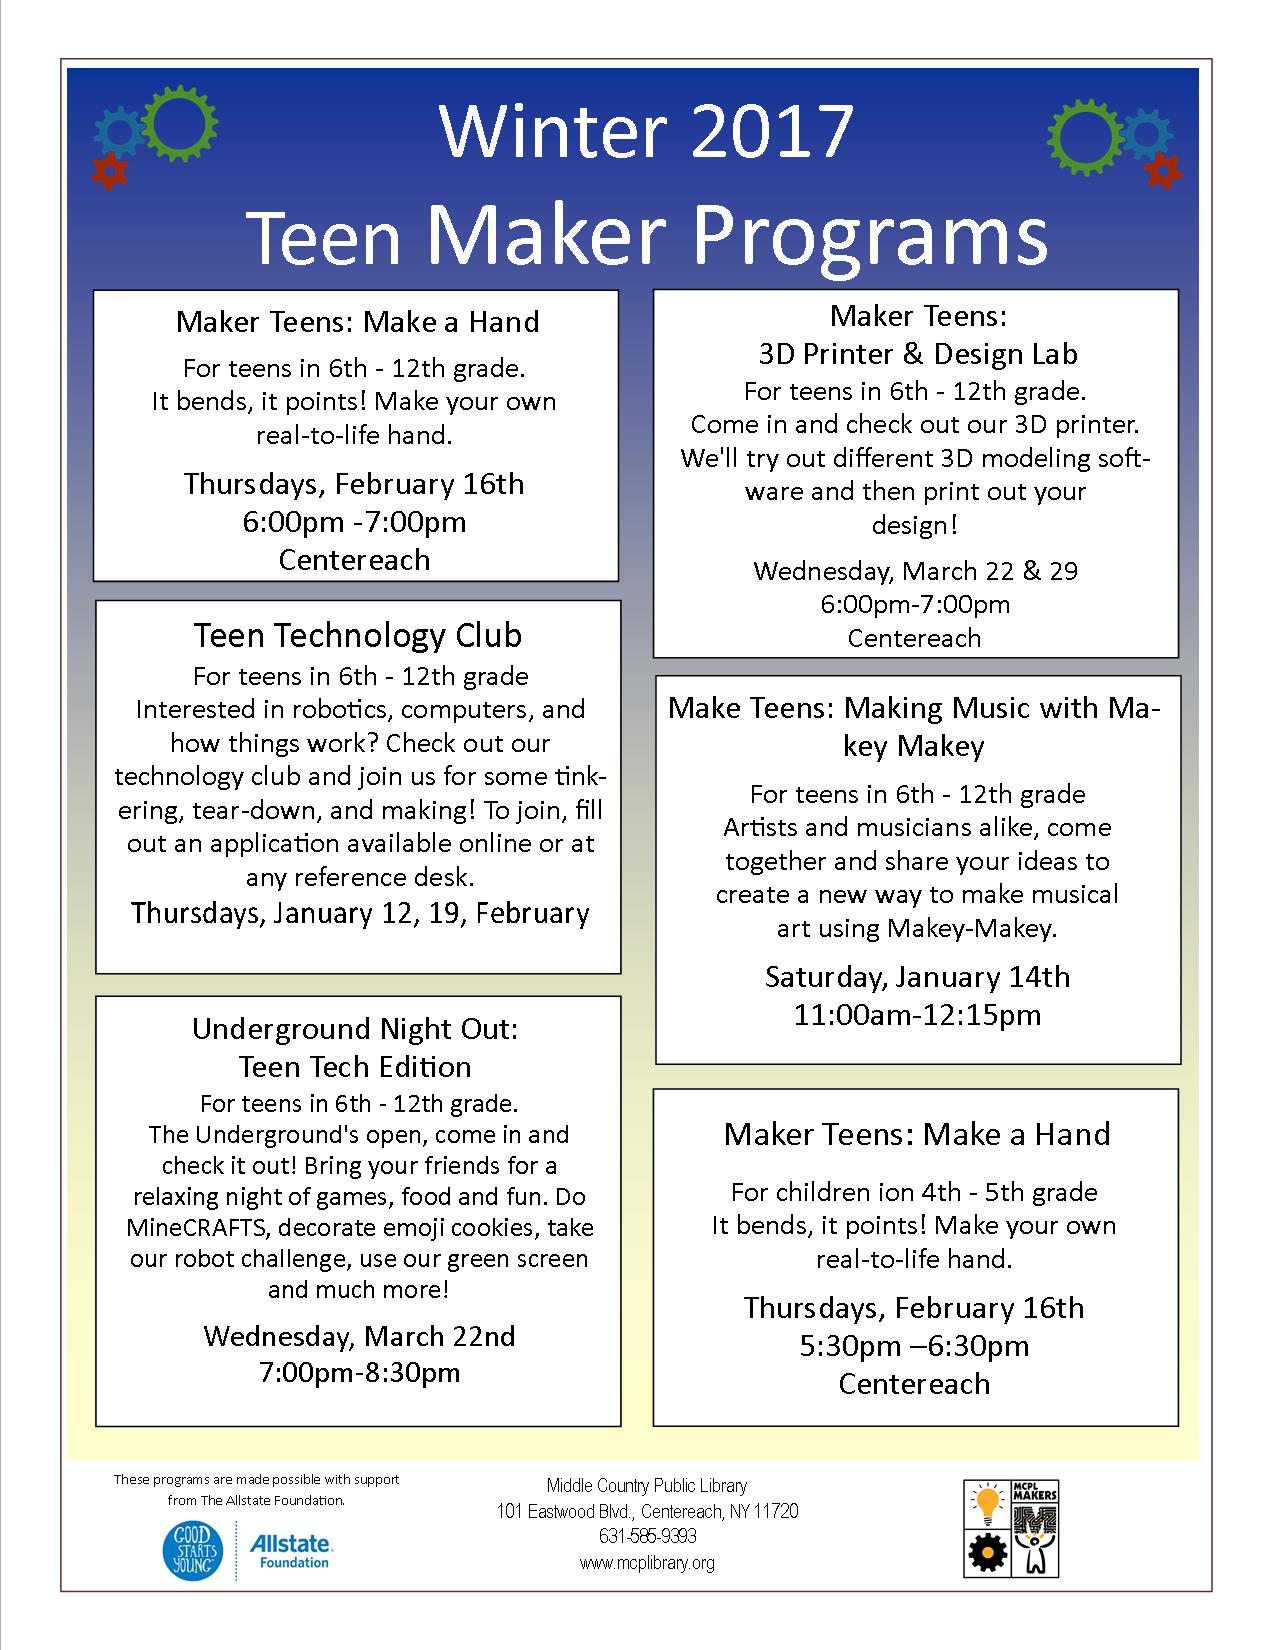 maker flyer 2017 middle country public library maker flyer 2017